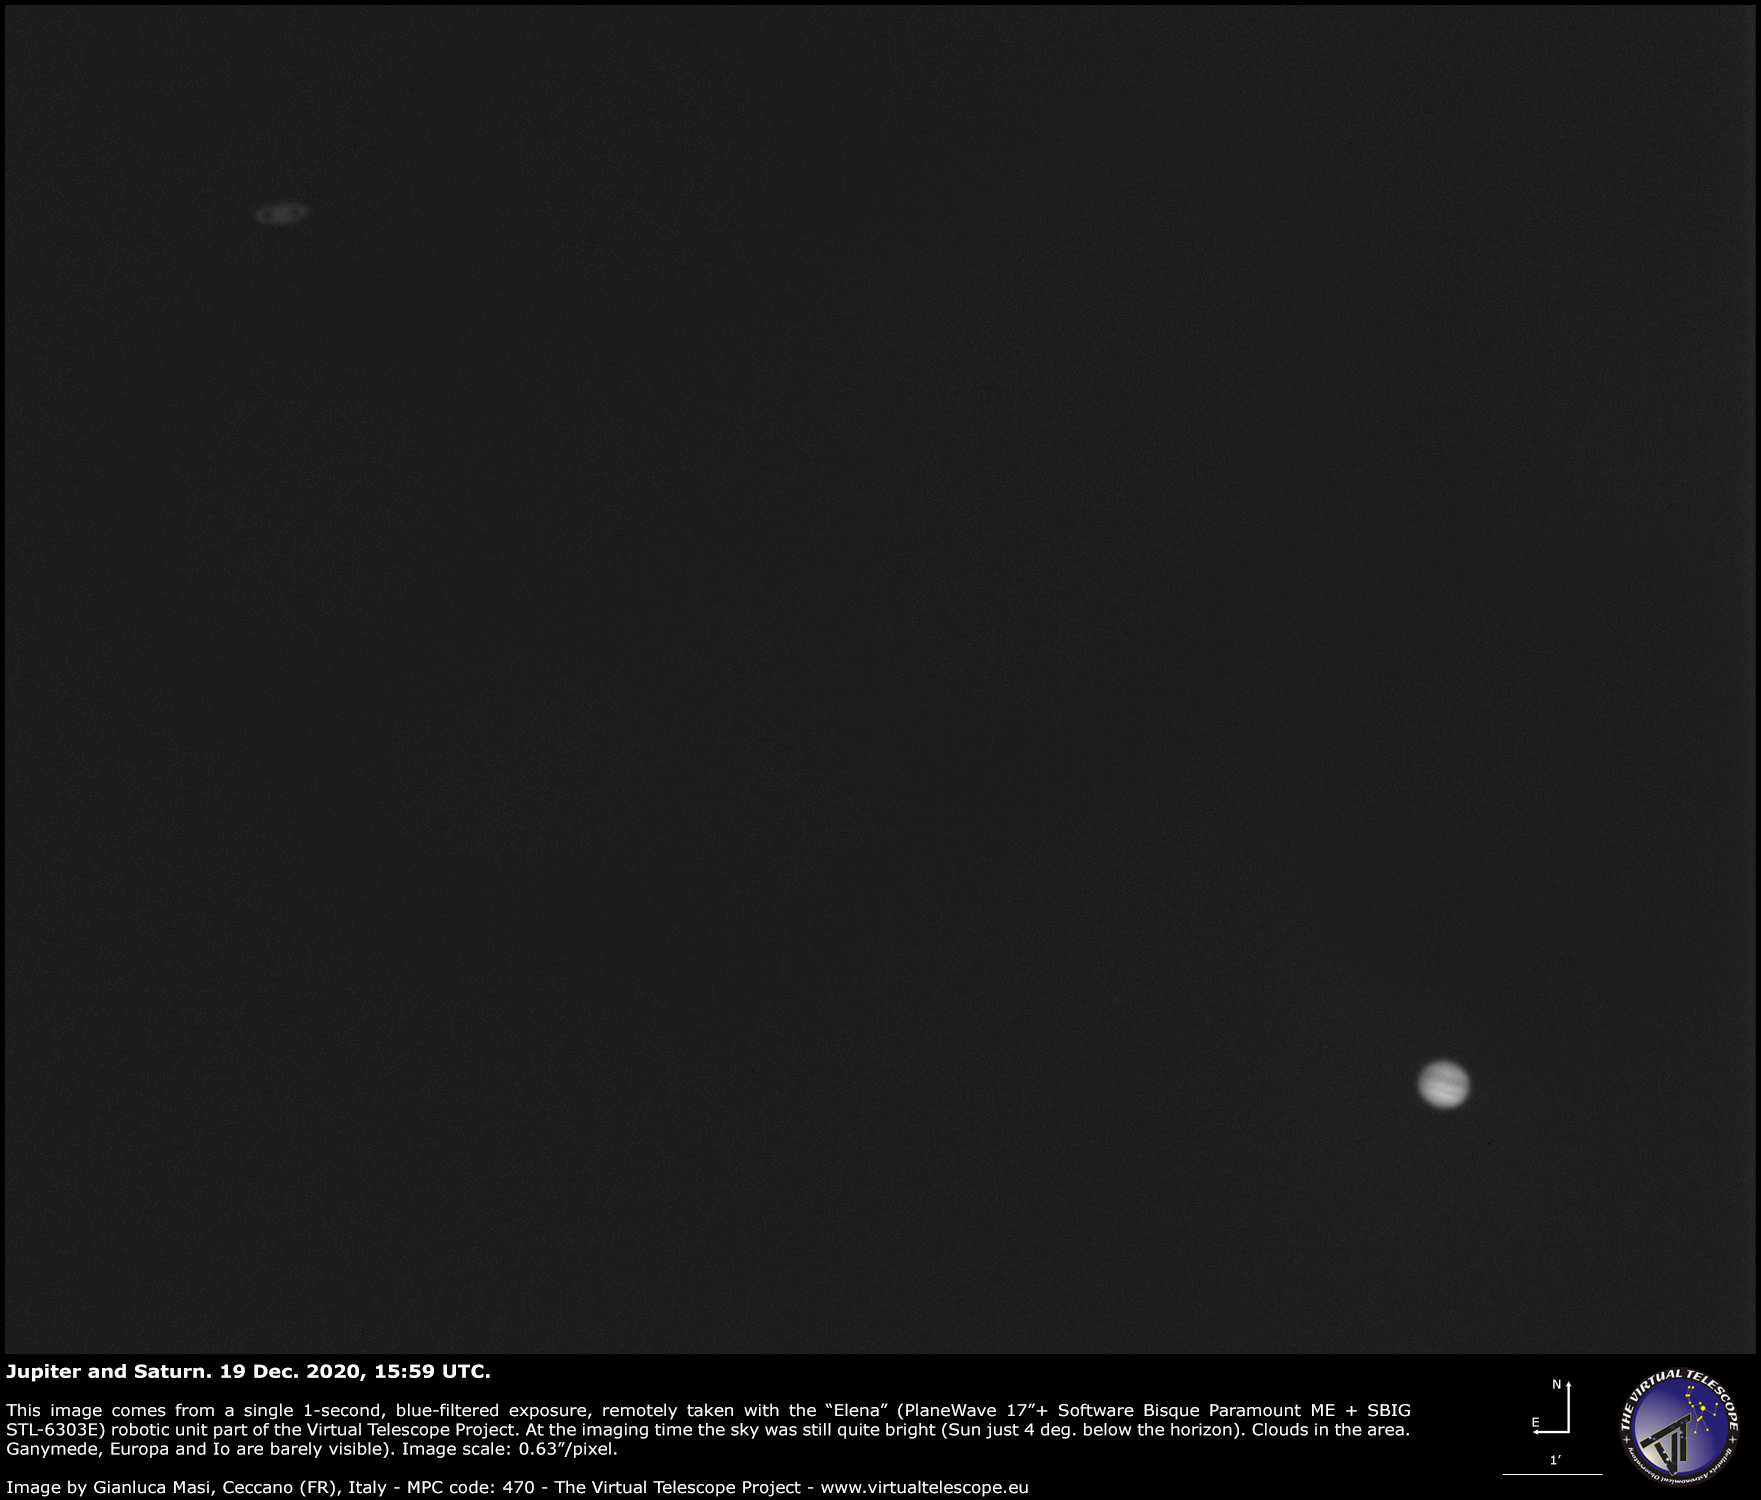 Jupiter and Saturn, about 1/4th of a degree apart. 19 Dec. 2020.